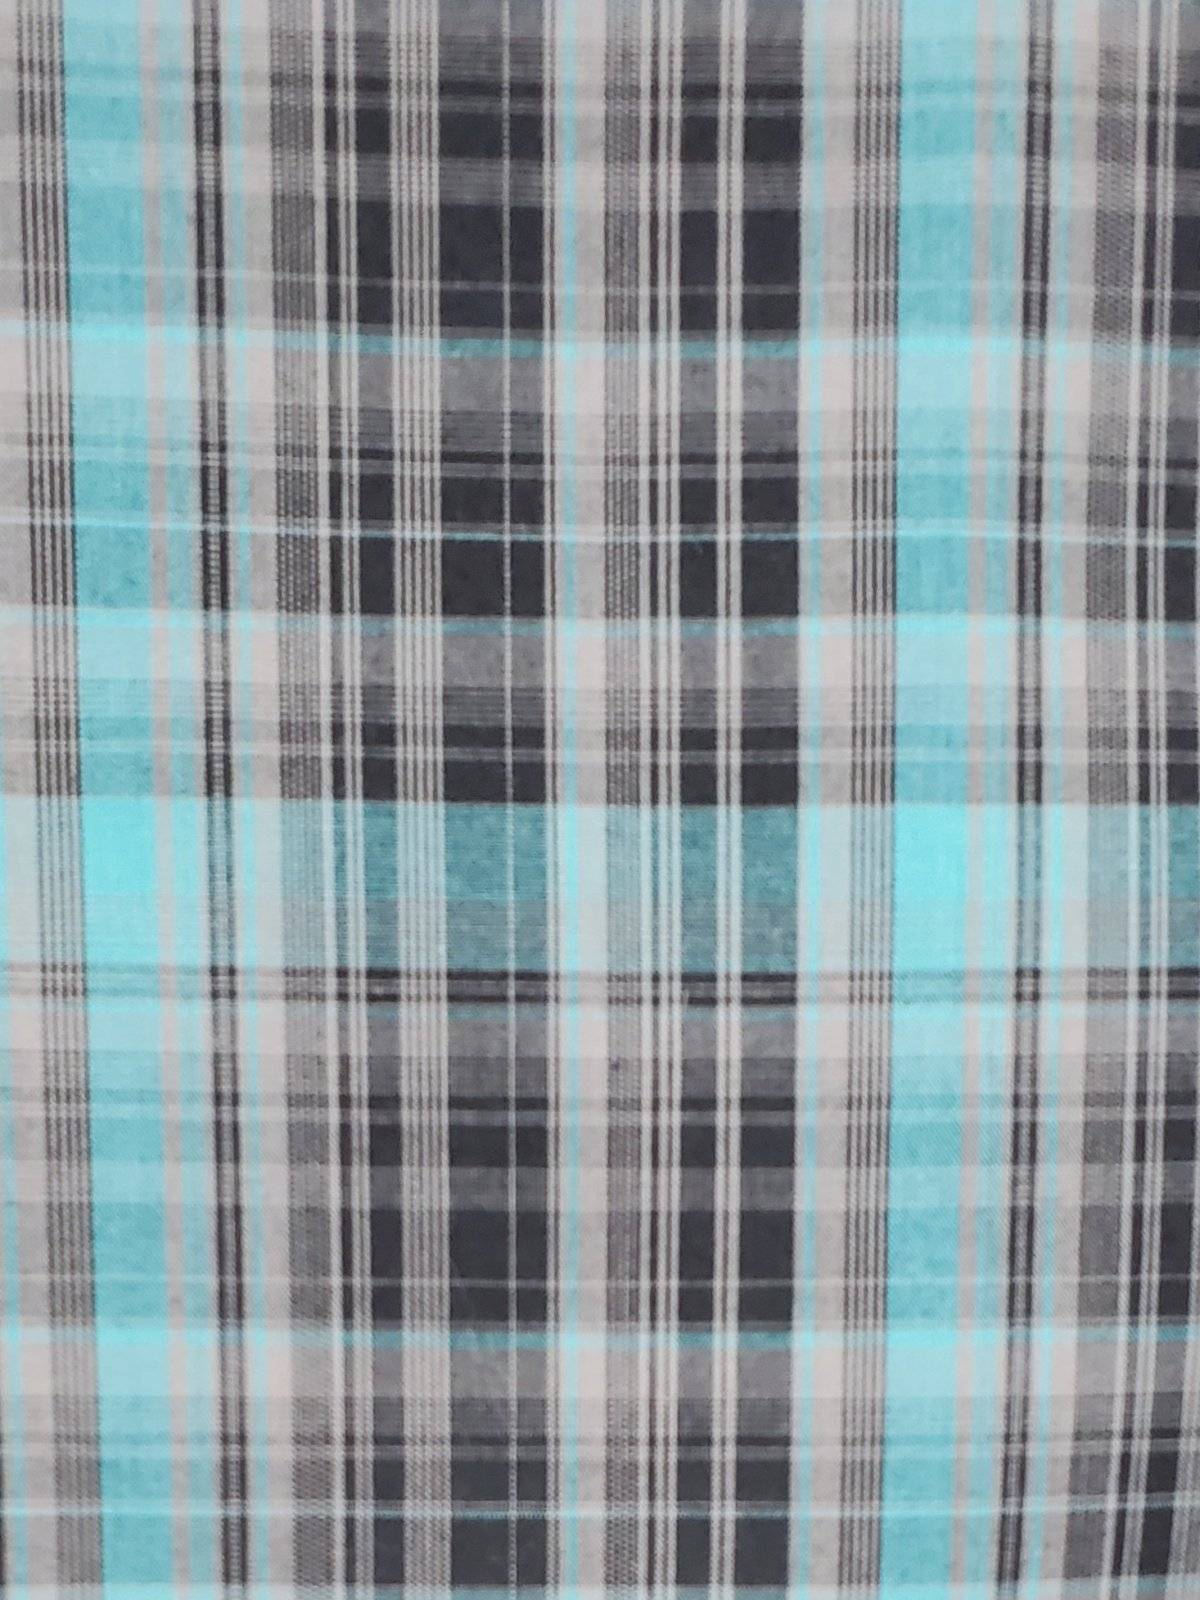 Mook Fabrics Oxford Teal 60 65%Polyester/35%Cotton 13200 94848